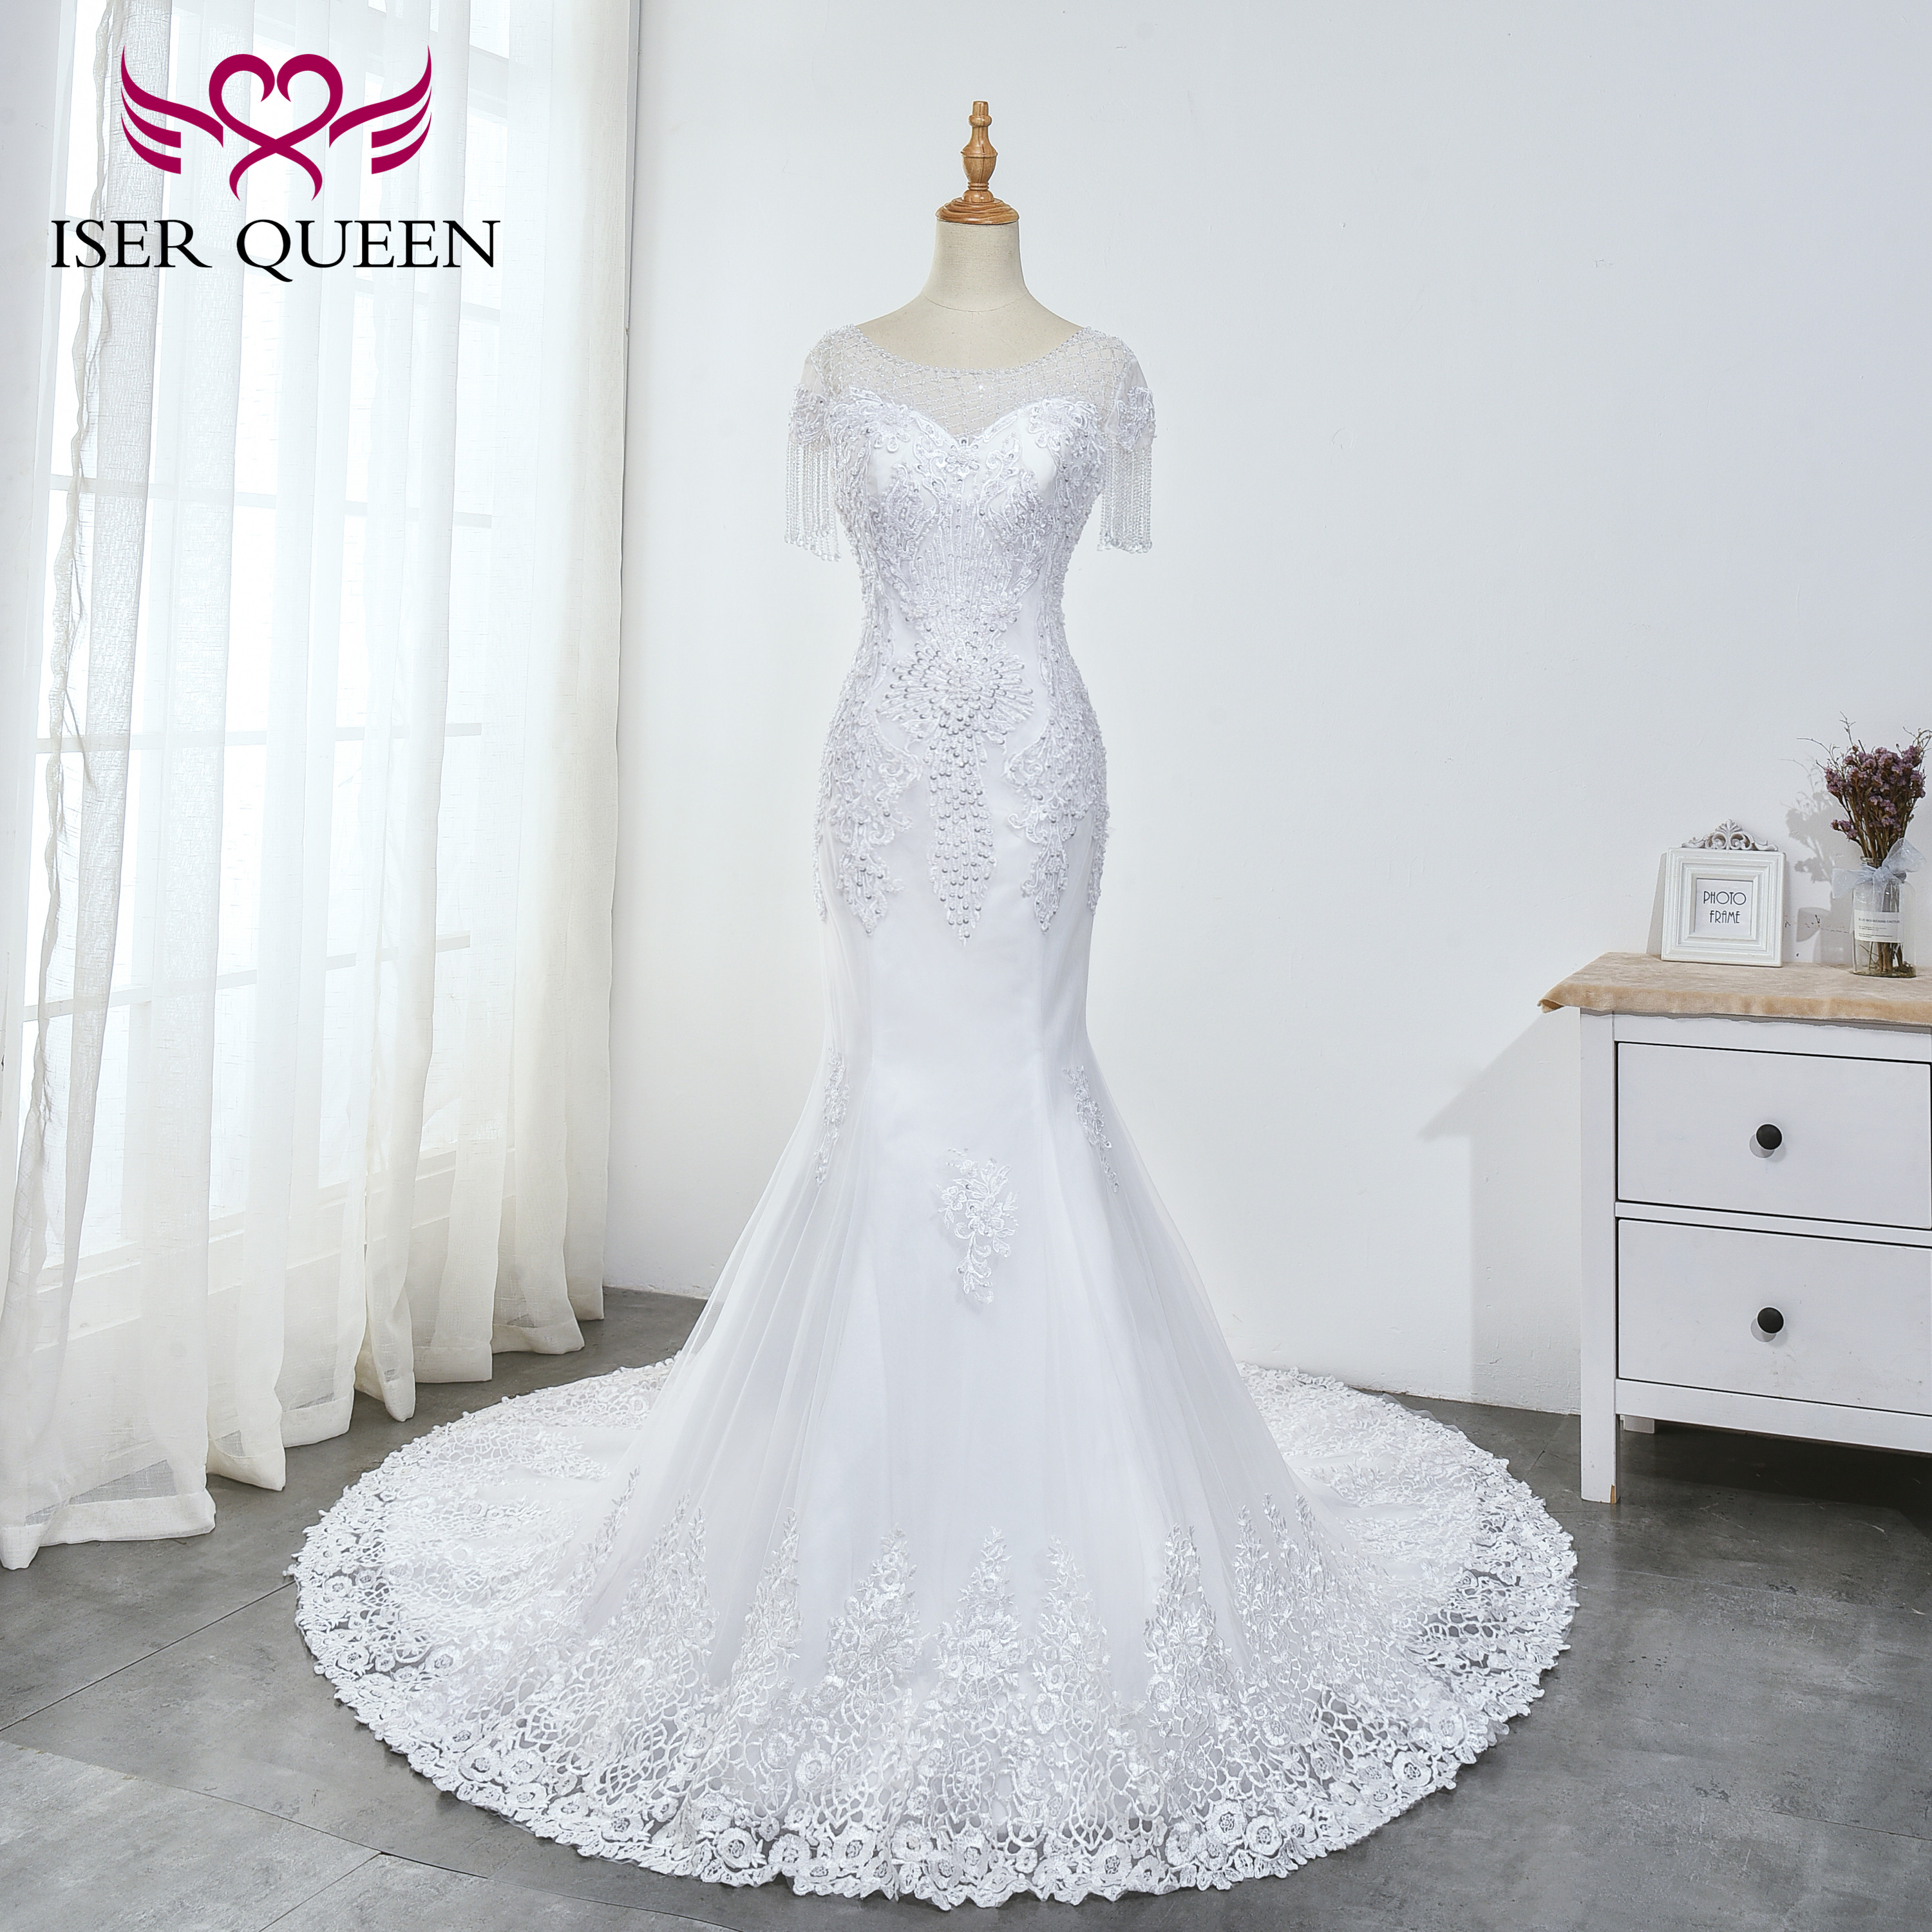 Illusion Short Sleeves Embroidery Sequined Beading And Pearls Crystal Mermaid Wedding Dresses Pure White Elegant Vestido WX0035